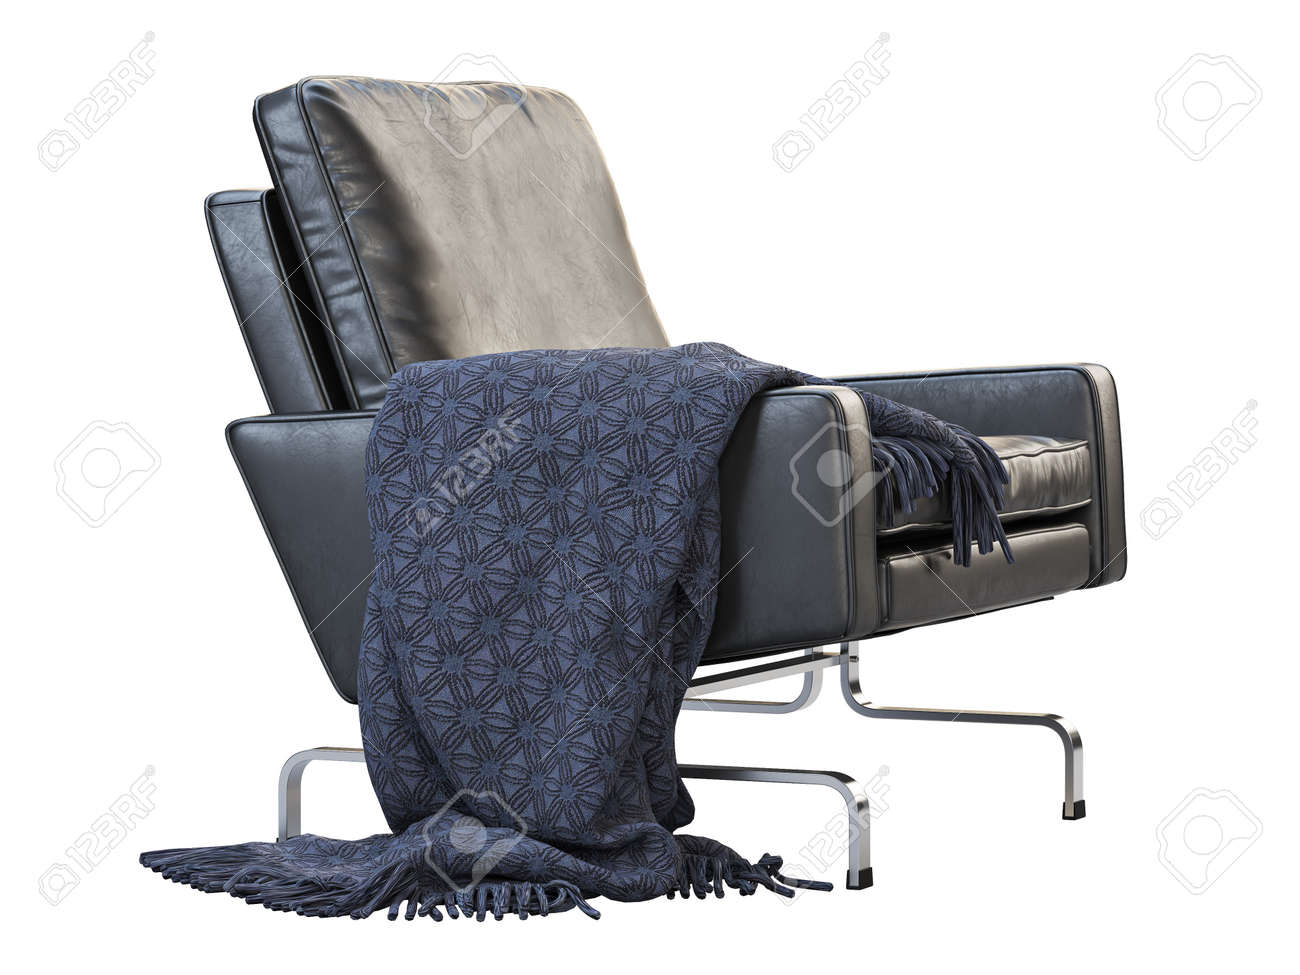 Mid Century Leather Chair Leather Upholstery Armchair With Metal Stock Photo Picture And Royalty Free Image Image 138135038